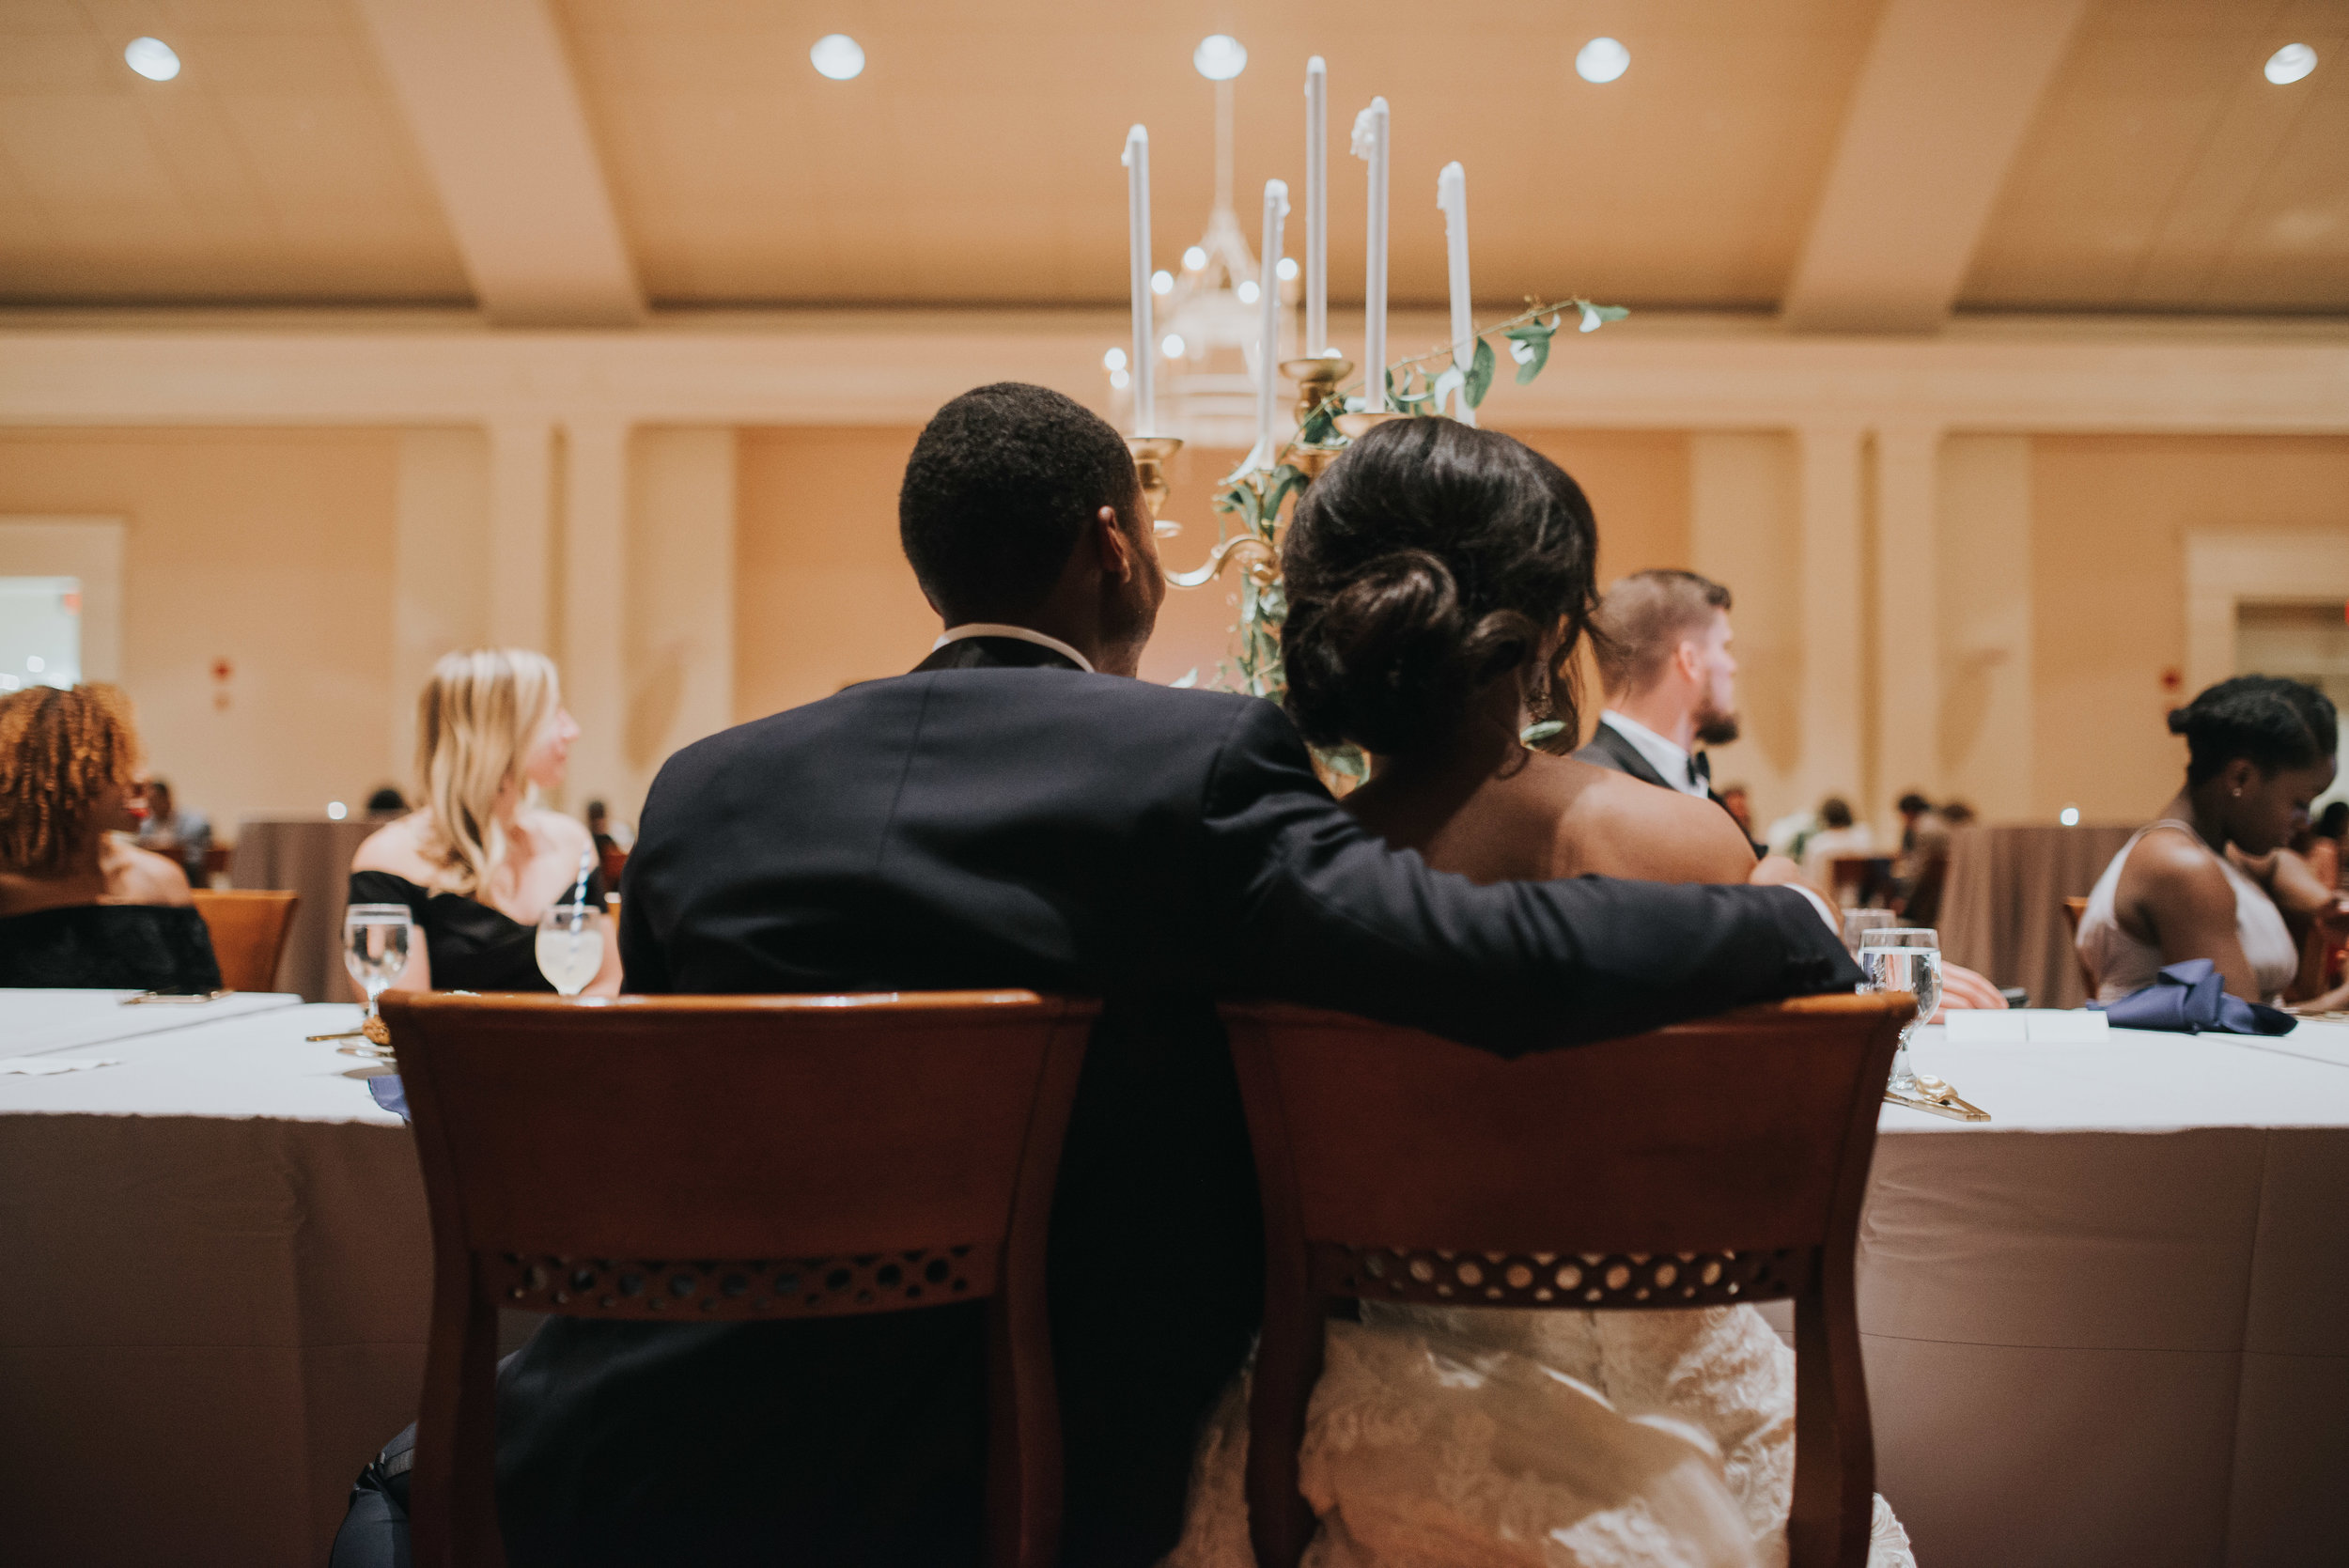 Bride and groom sitting onlooking during toasts